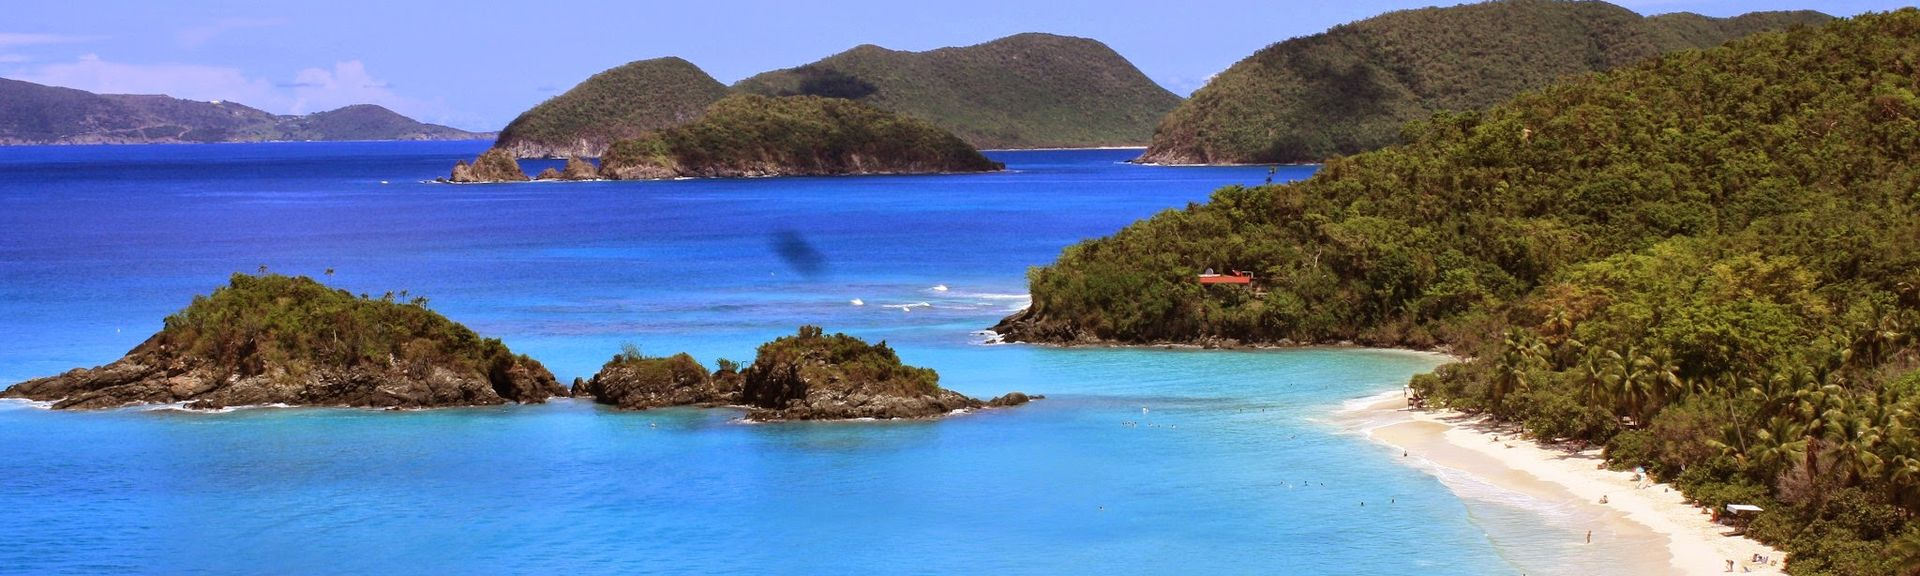 Lavender Hill (Estate Chocolate Hole and Great Cruz Bay, Saint John, U.S. Virgin Islands)